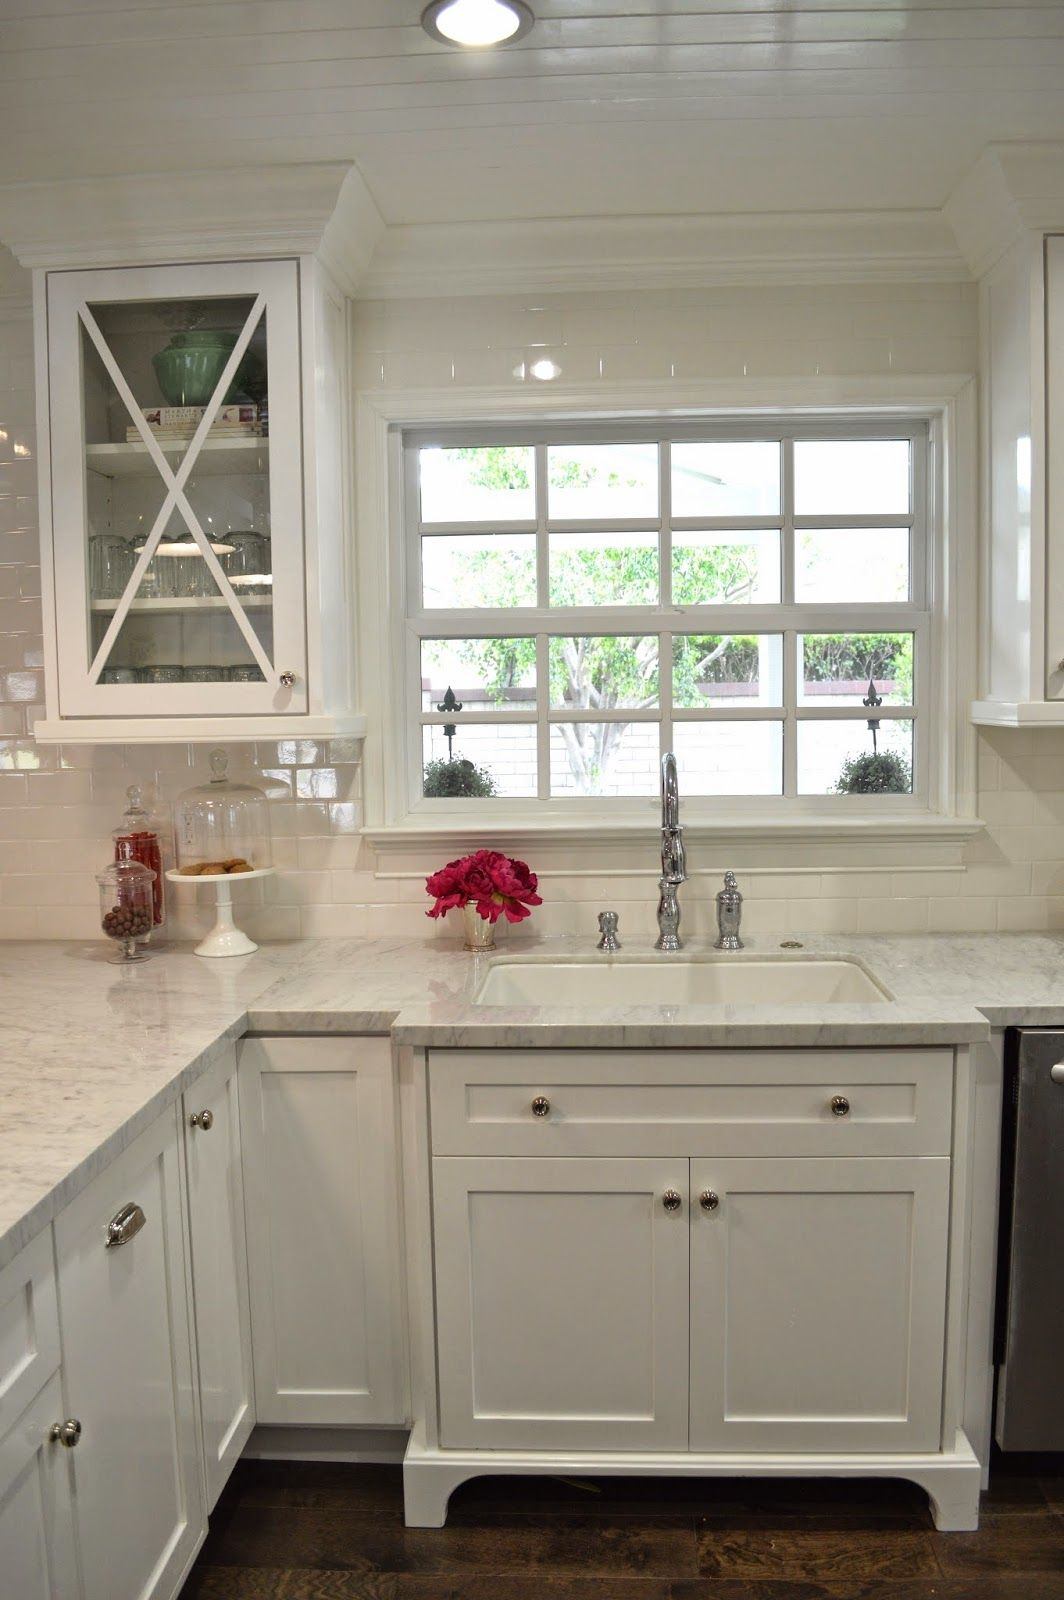 The Cape Cod Ranch Renovation Great Room Continued Kitchen Kitchen Remodel Small Kitchen Renovation Home Kitchens